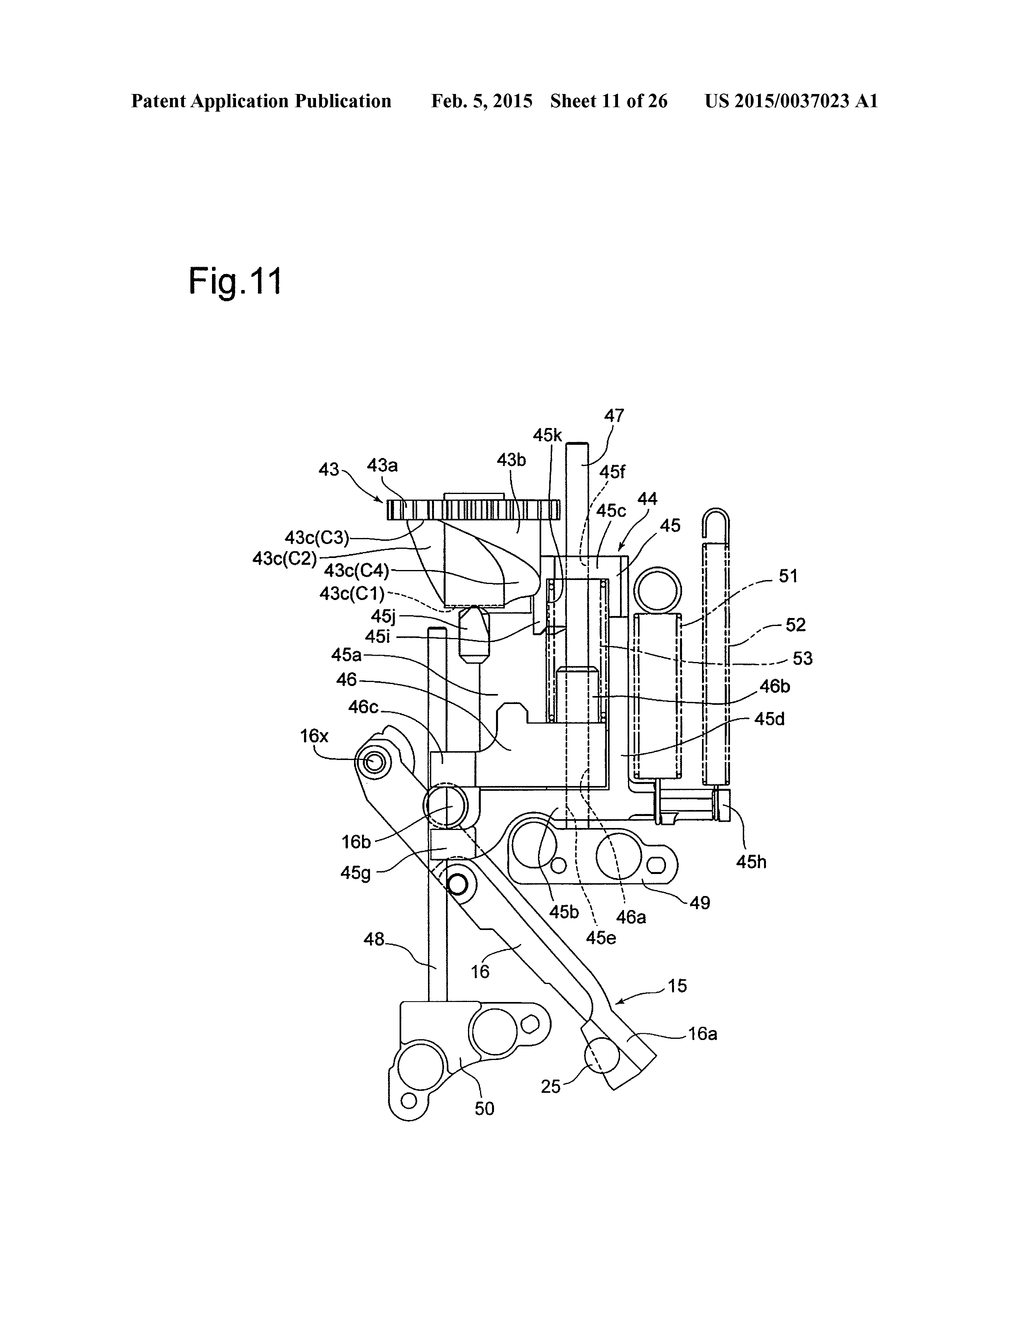 hight resolution of camera control apparatus for cam drive mechanism and control method for cam drive mechanism diagram schematic and image 12